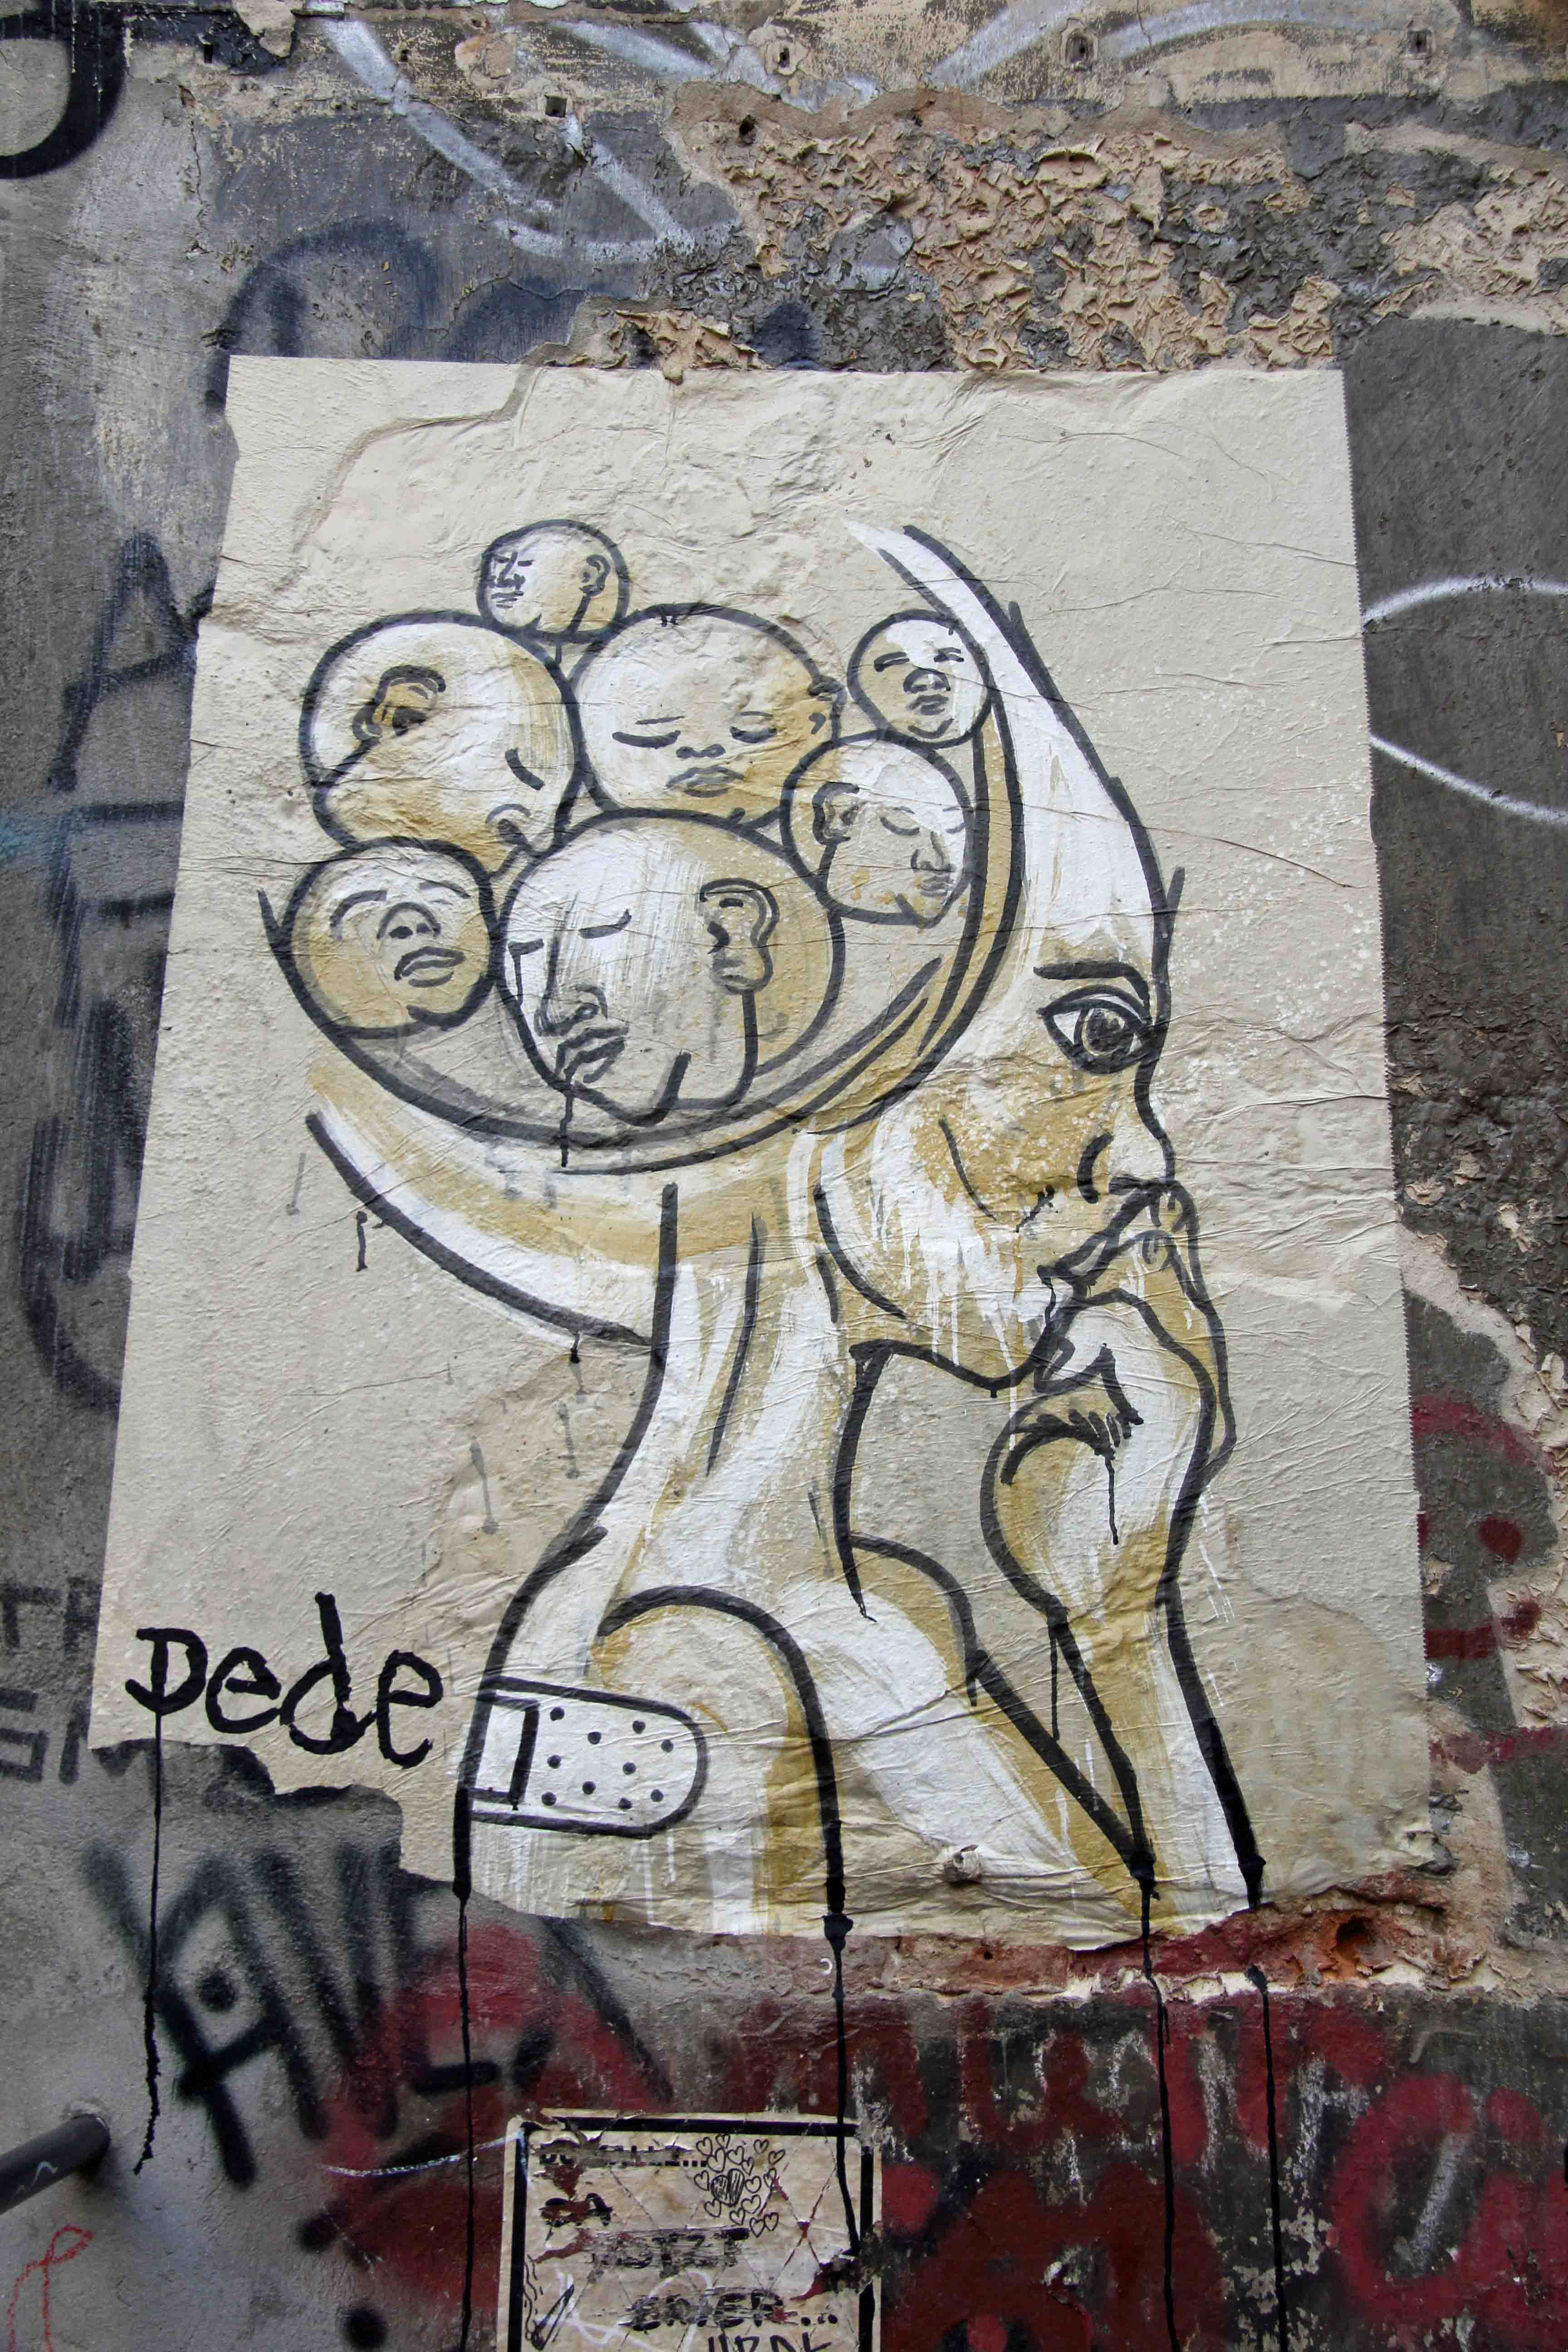 Miss (Head of Heads) (Caffeine) - Street Art by Dede in Berlin